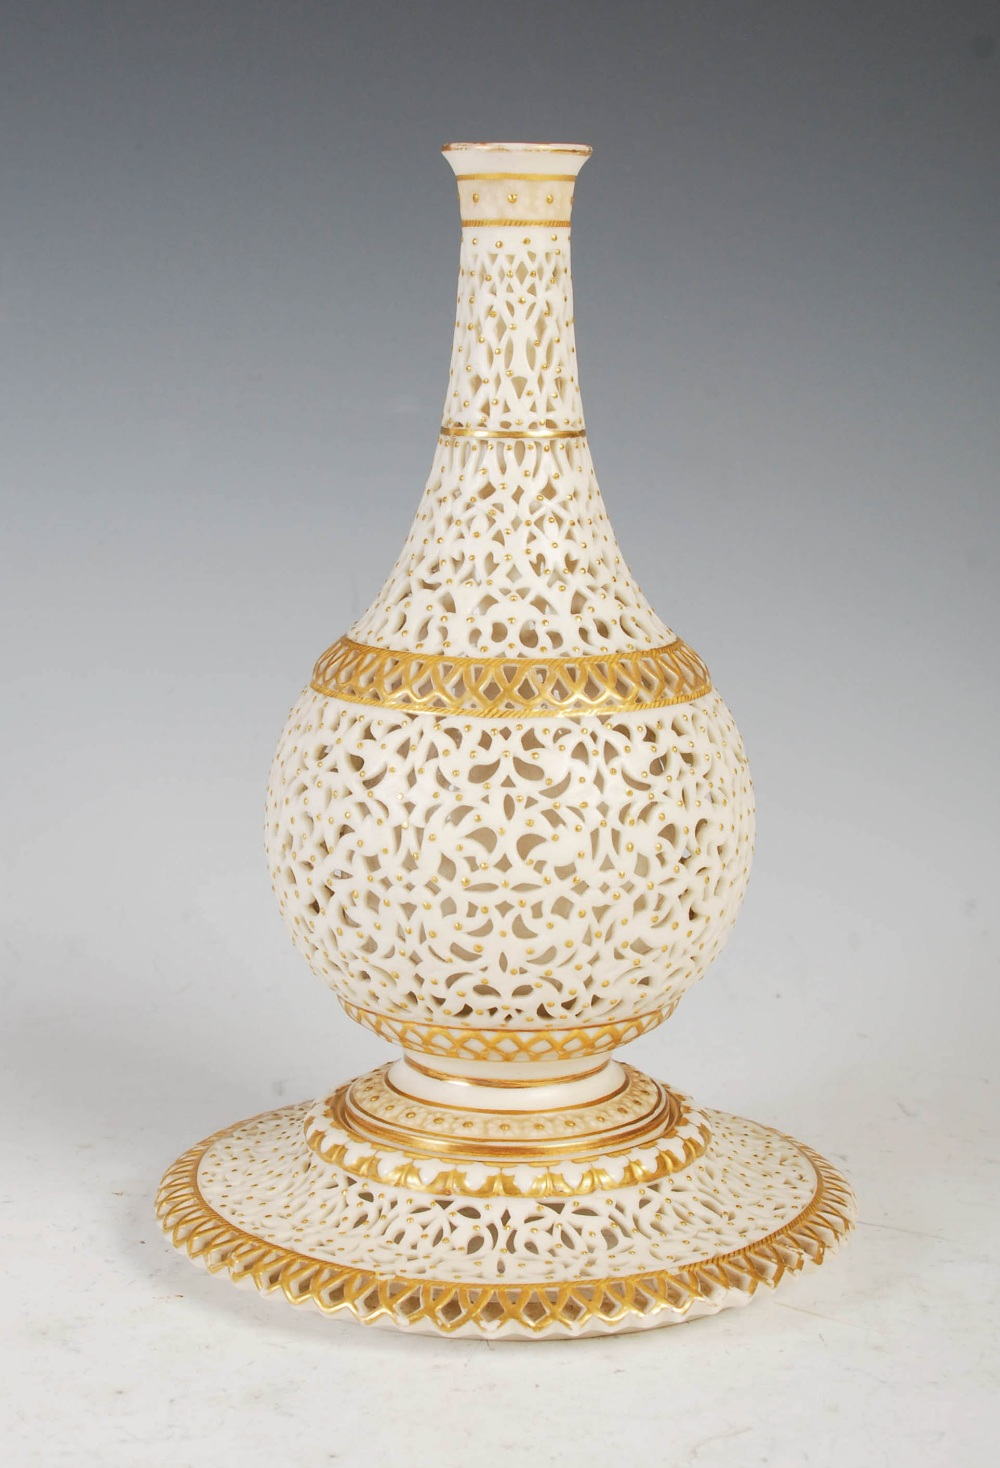 A Grainger & Co. Royal Worcester reticulated bottle vase, dated 1902, on integral circular stand, - Image 2 of 5